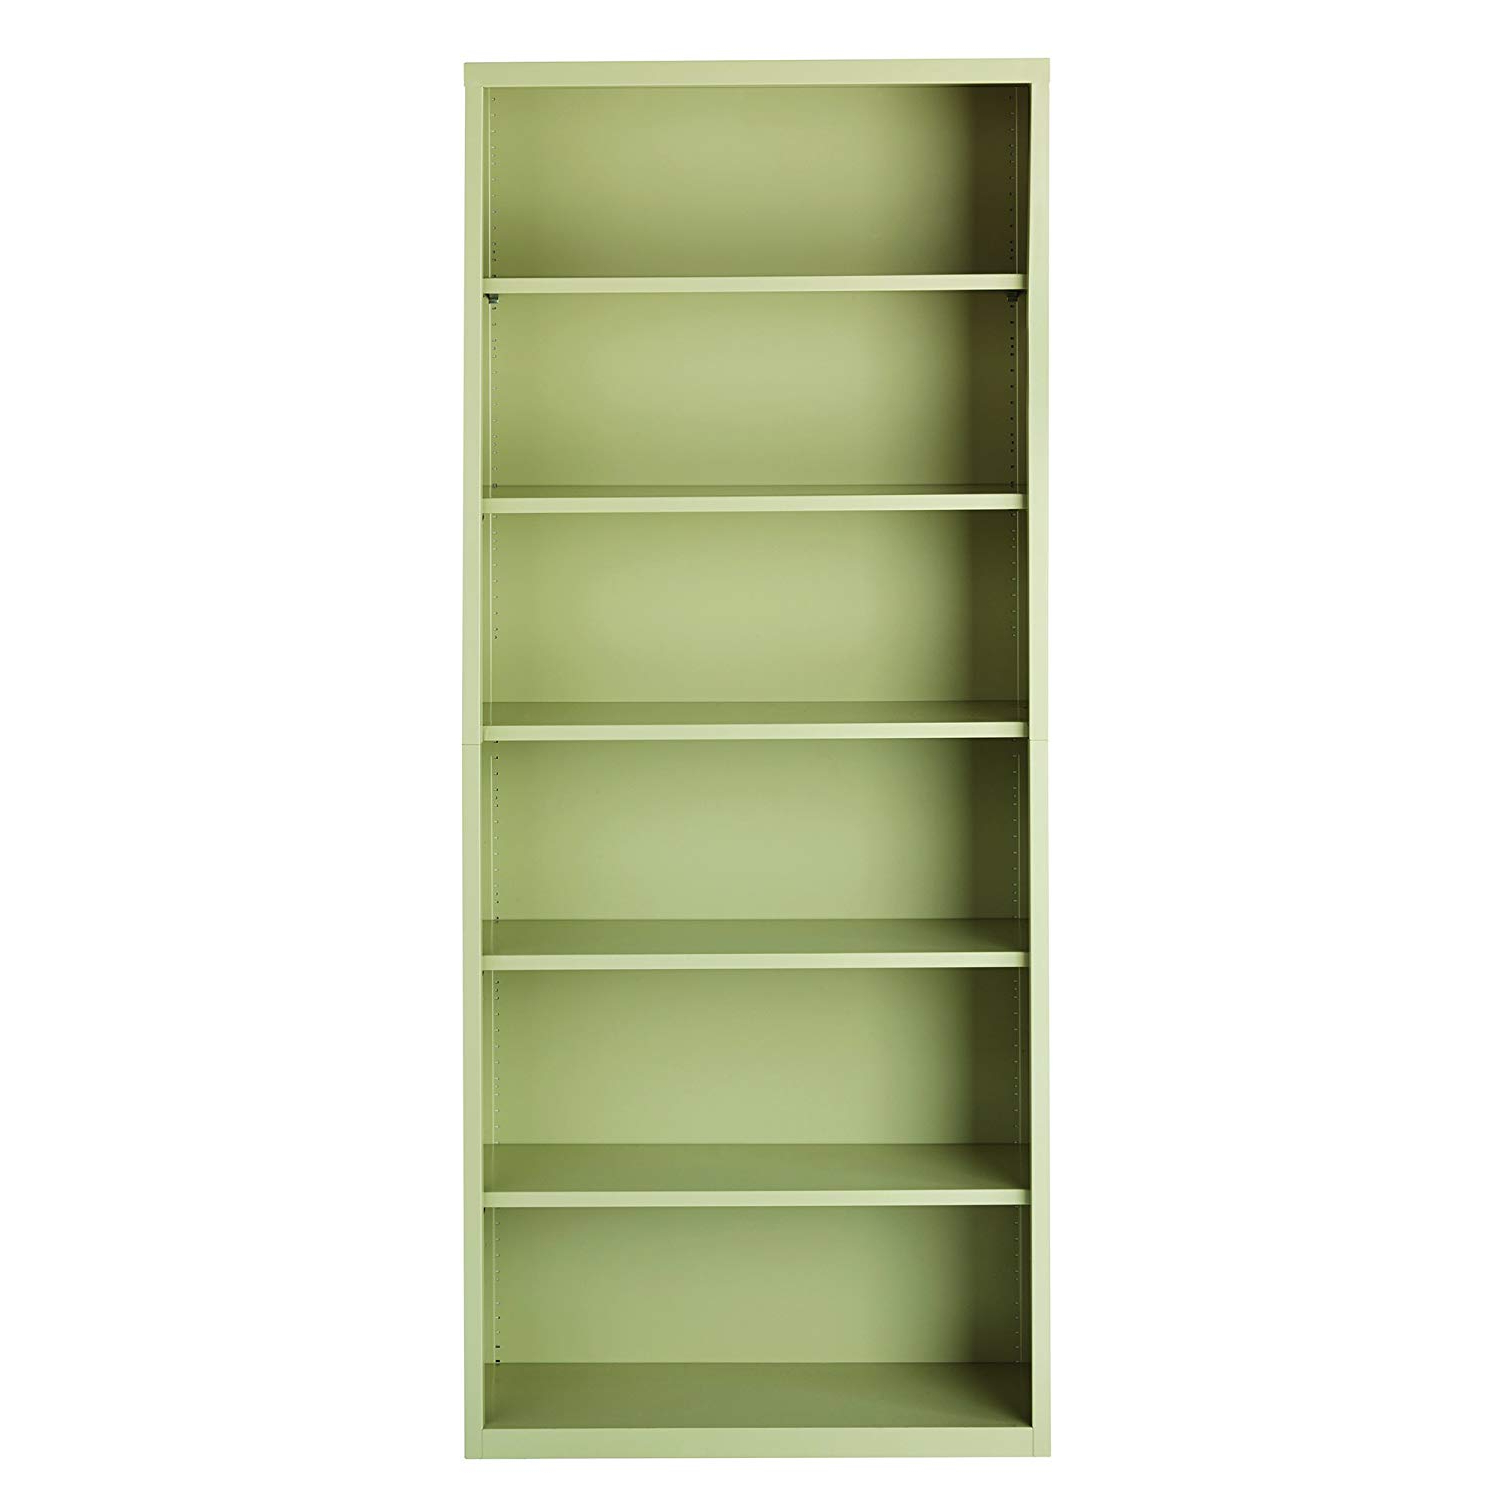 2020 Amazon: Office Dimensions Metal Office Bookcase 6 Shelf Intended For Martinsville Standard Bookcases (View 10 of 20)